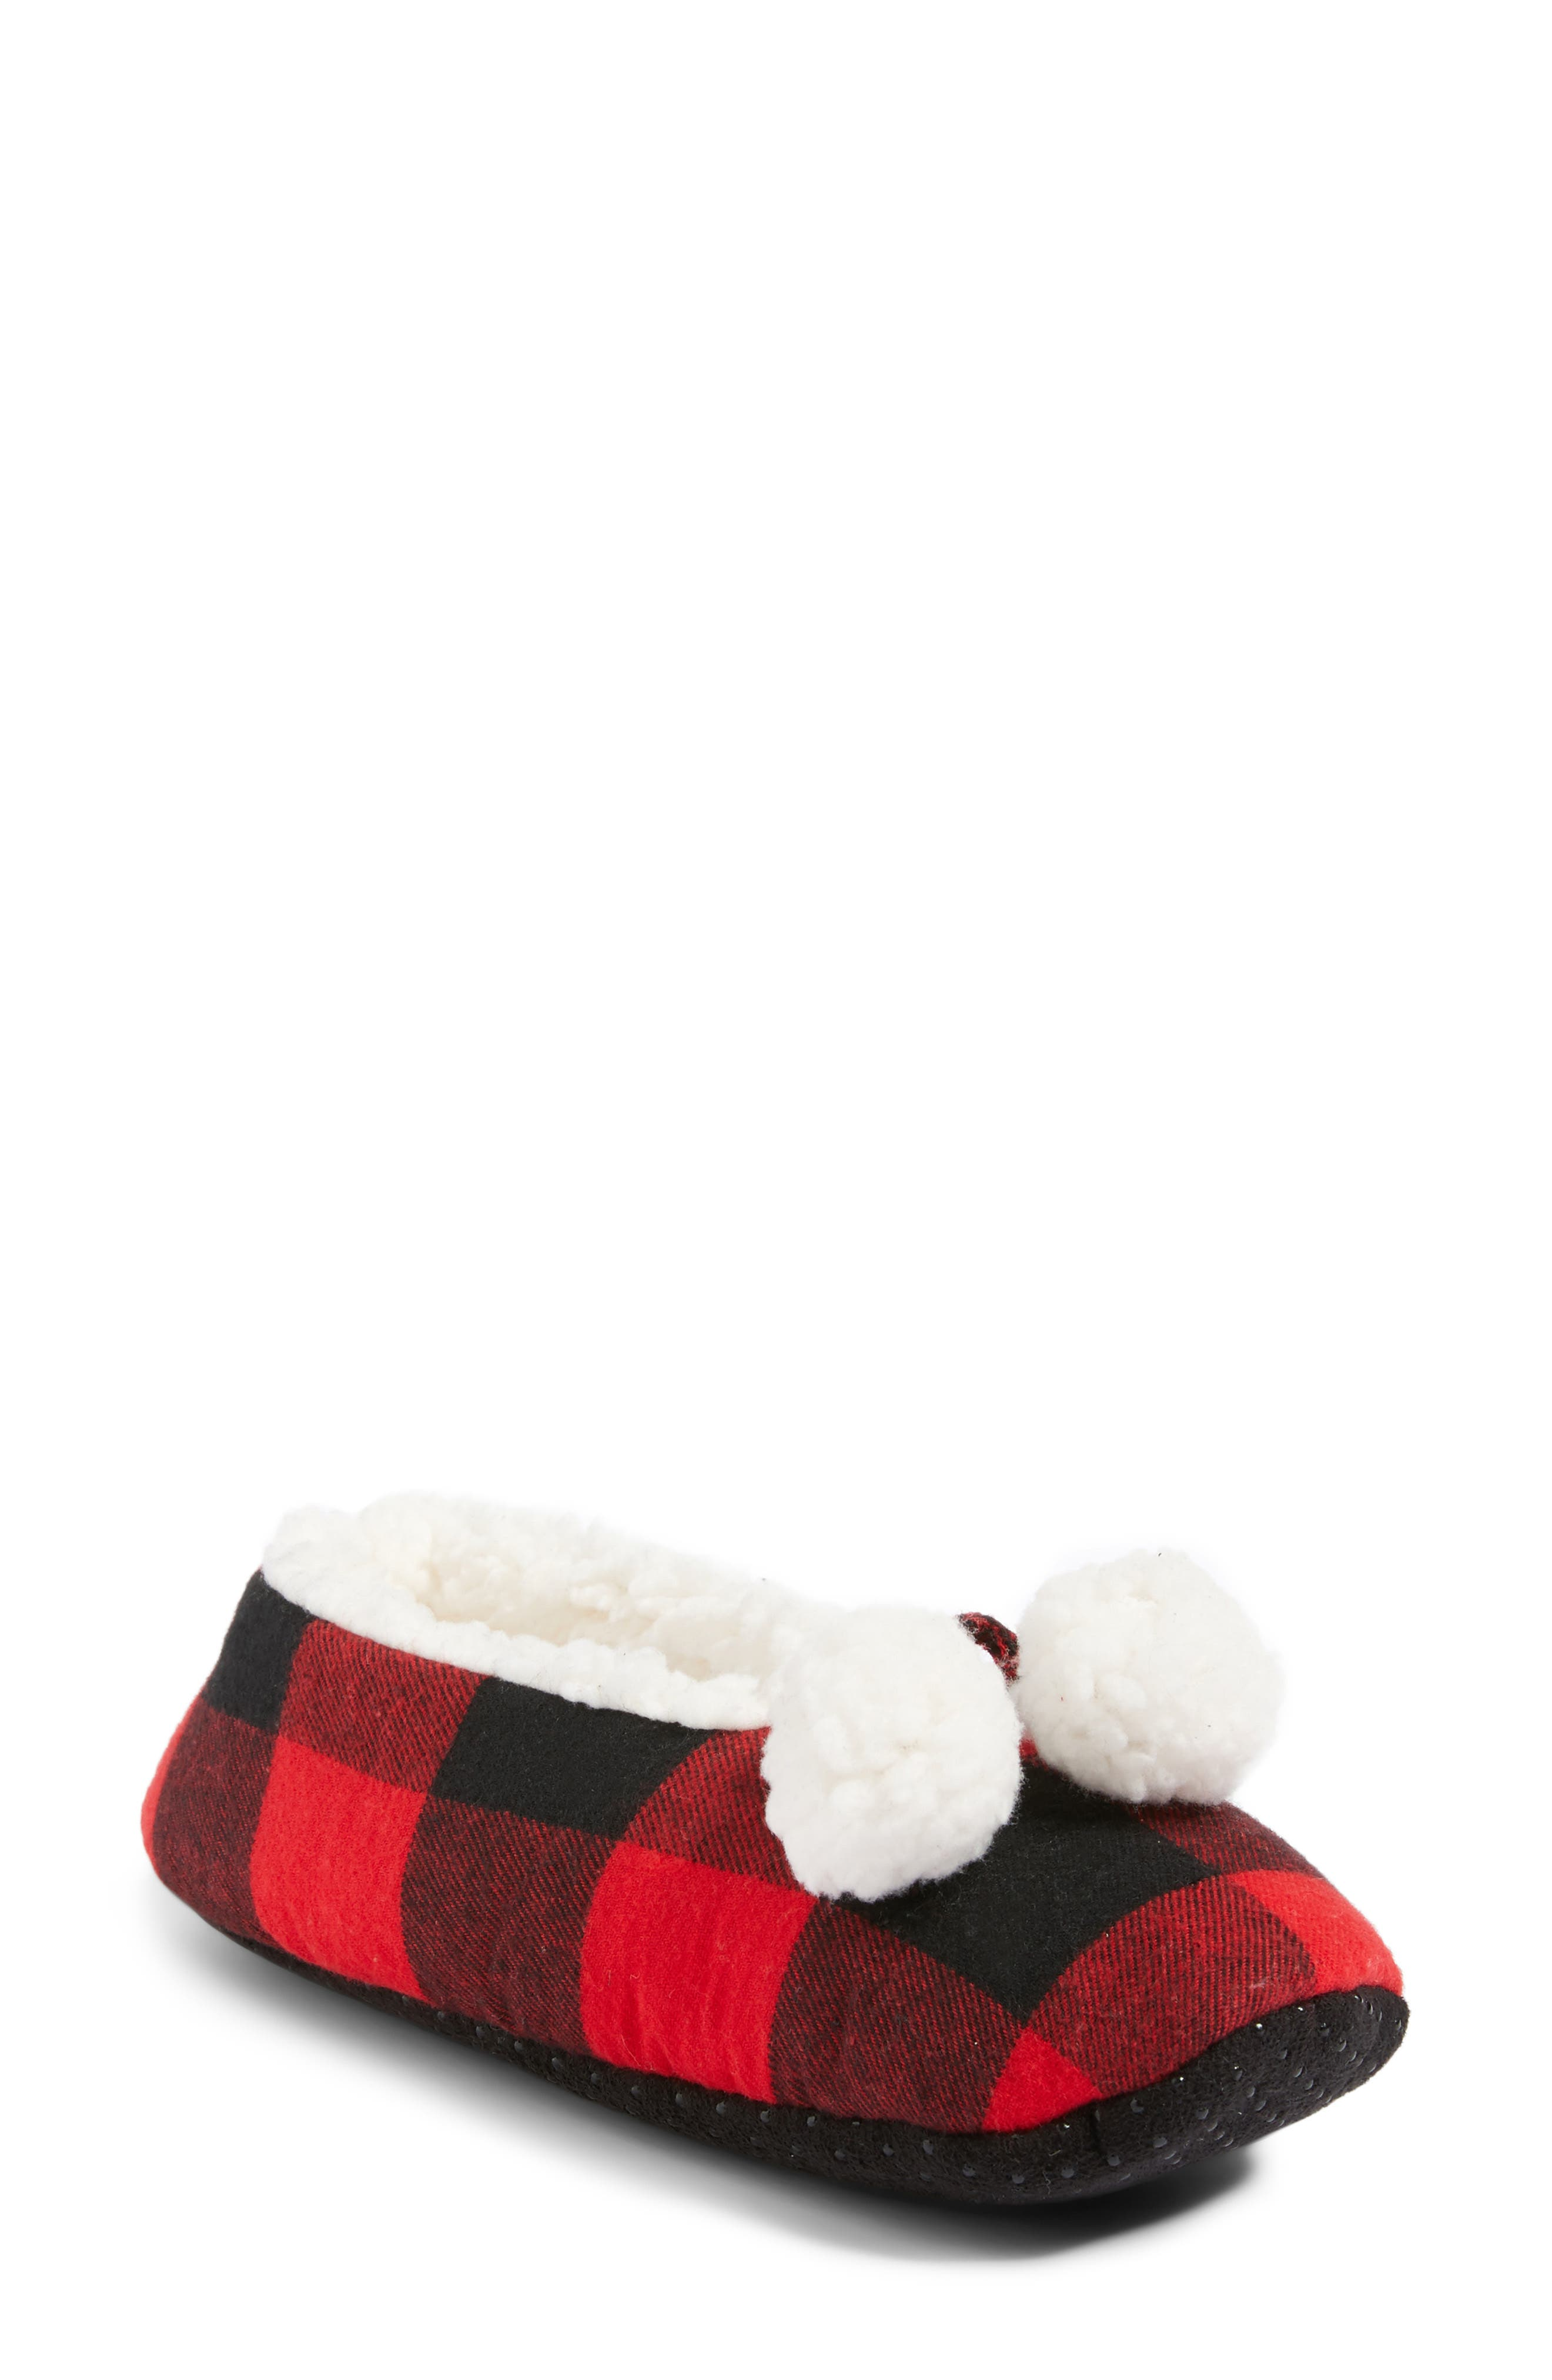 Main Image - Make + Model Plaid Slippers